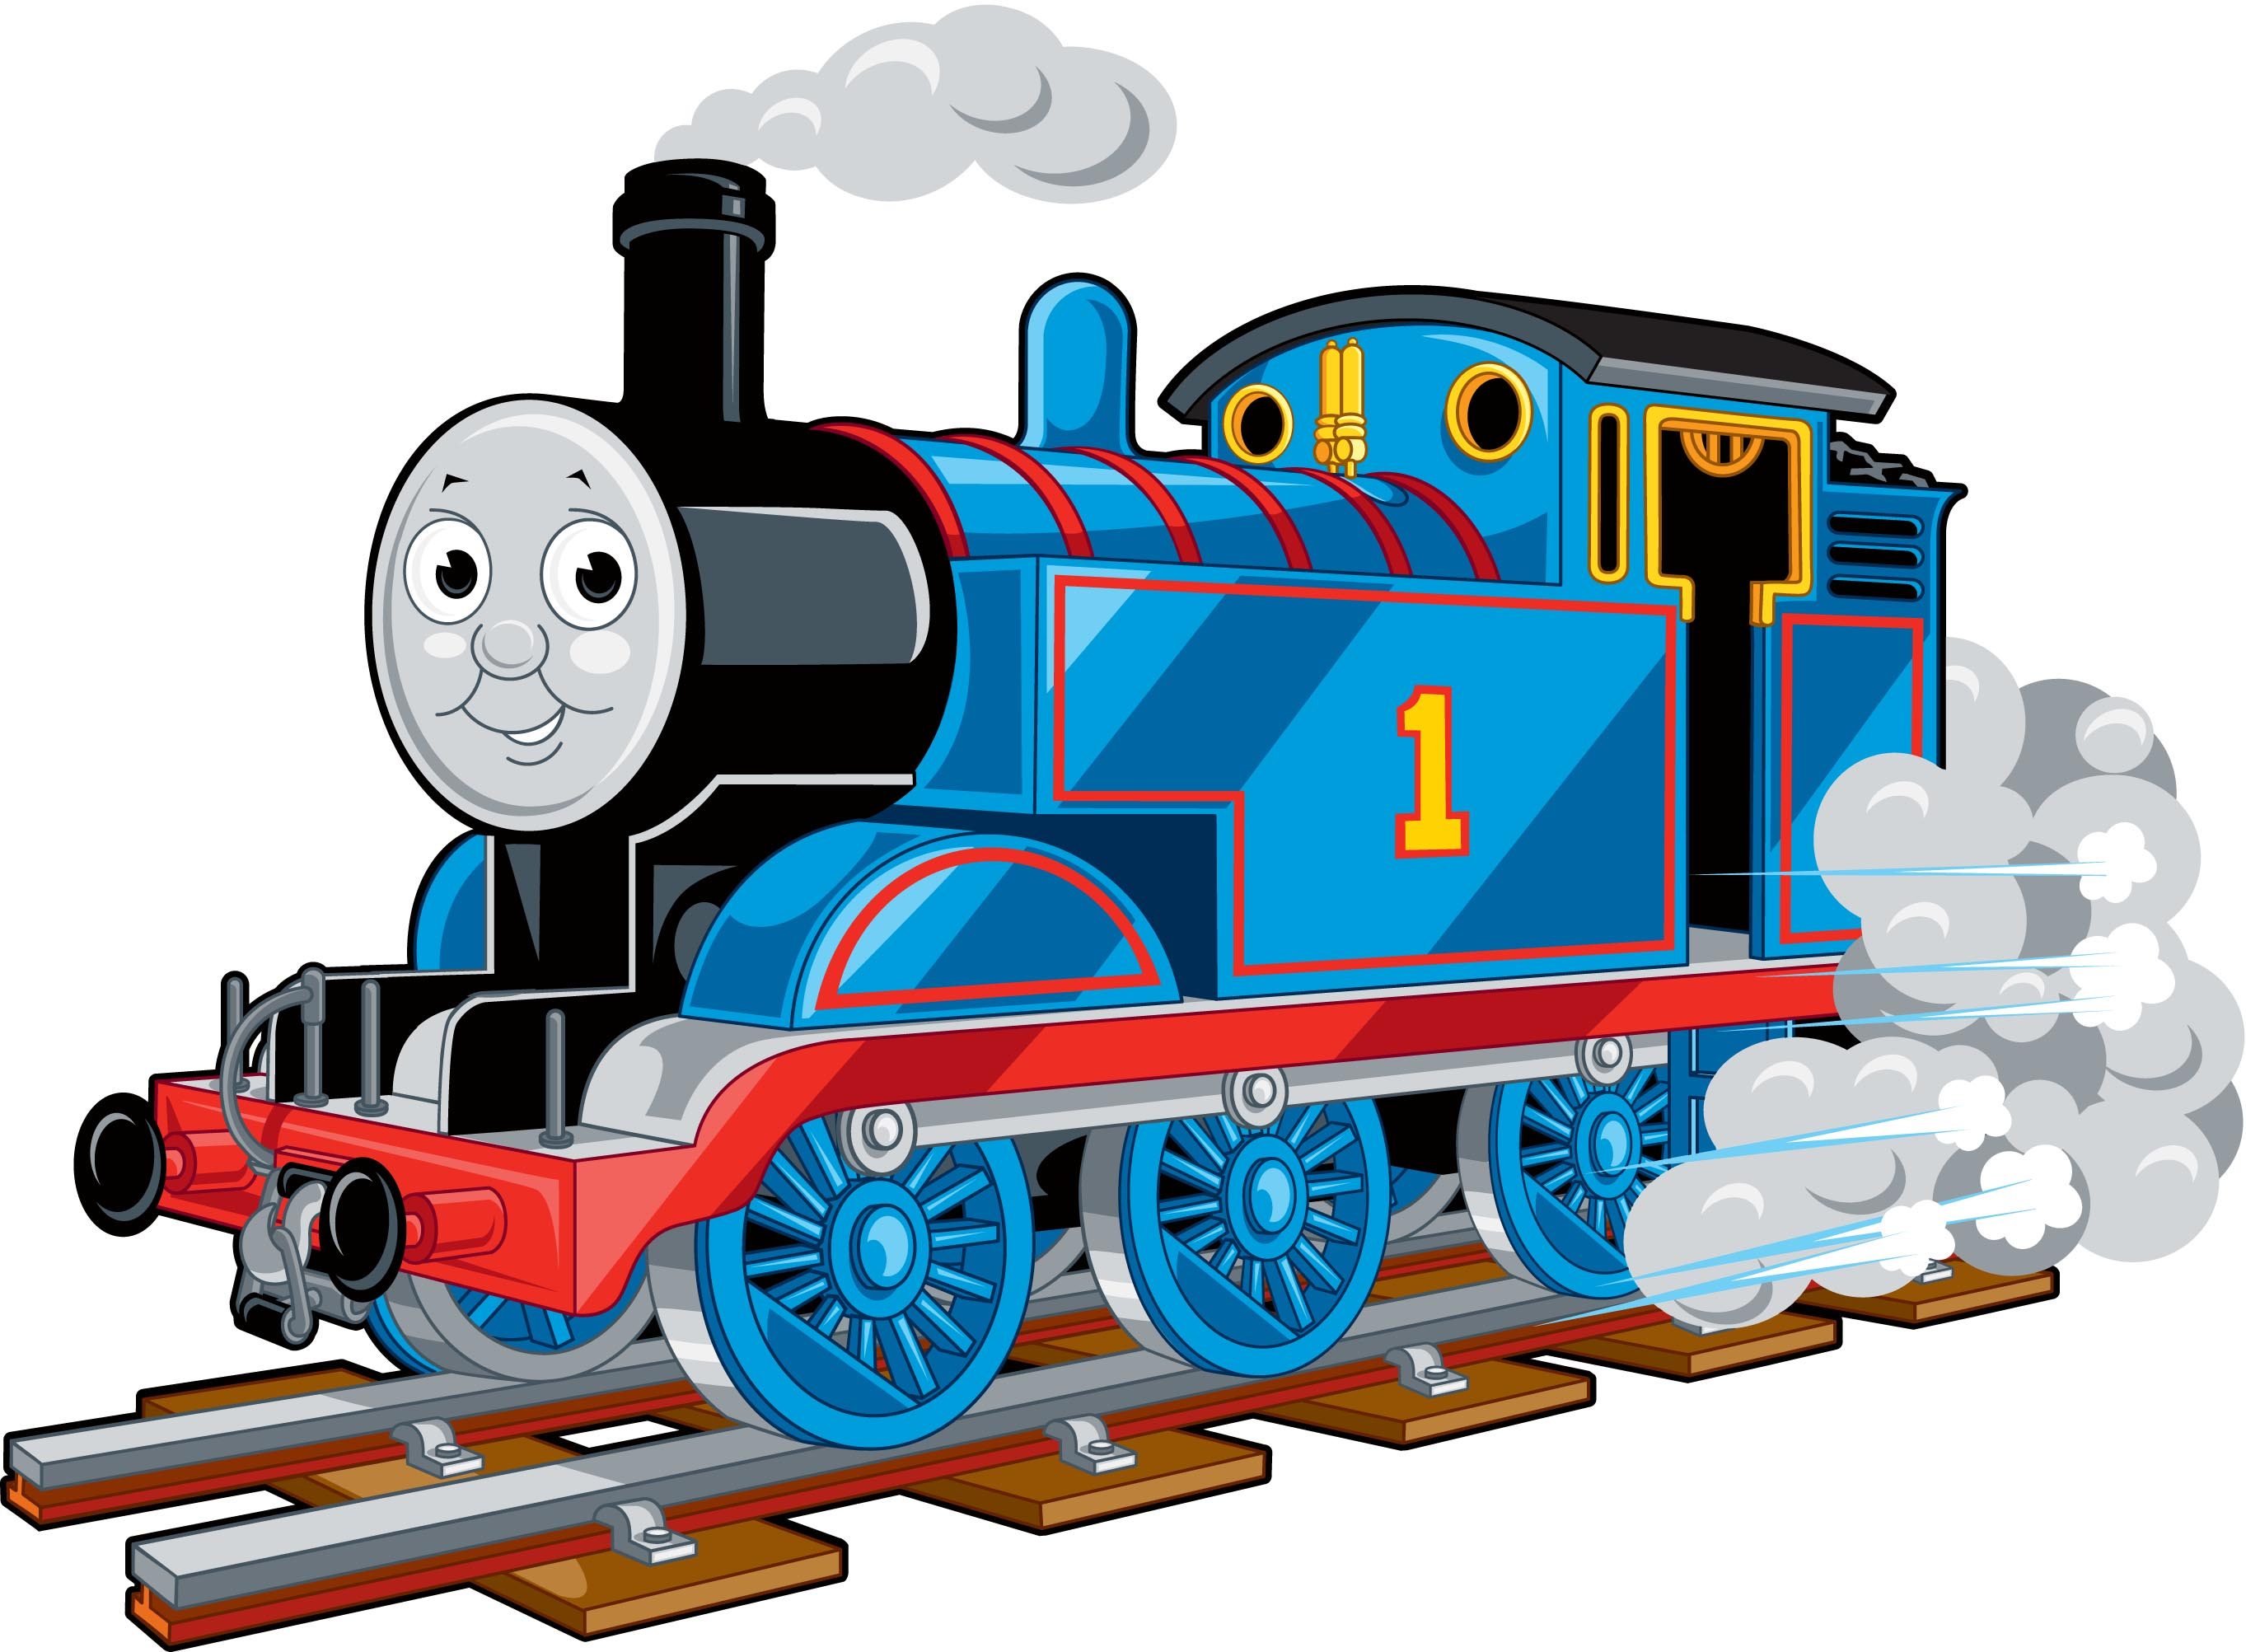 It's just a picture of Ridiculous Thomas the Train Images Free